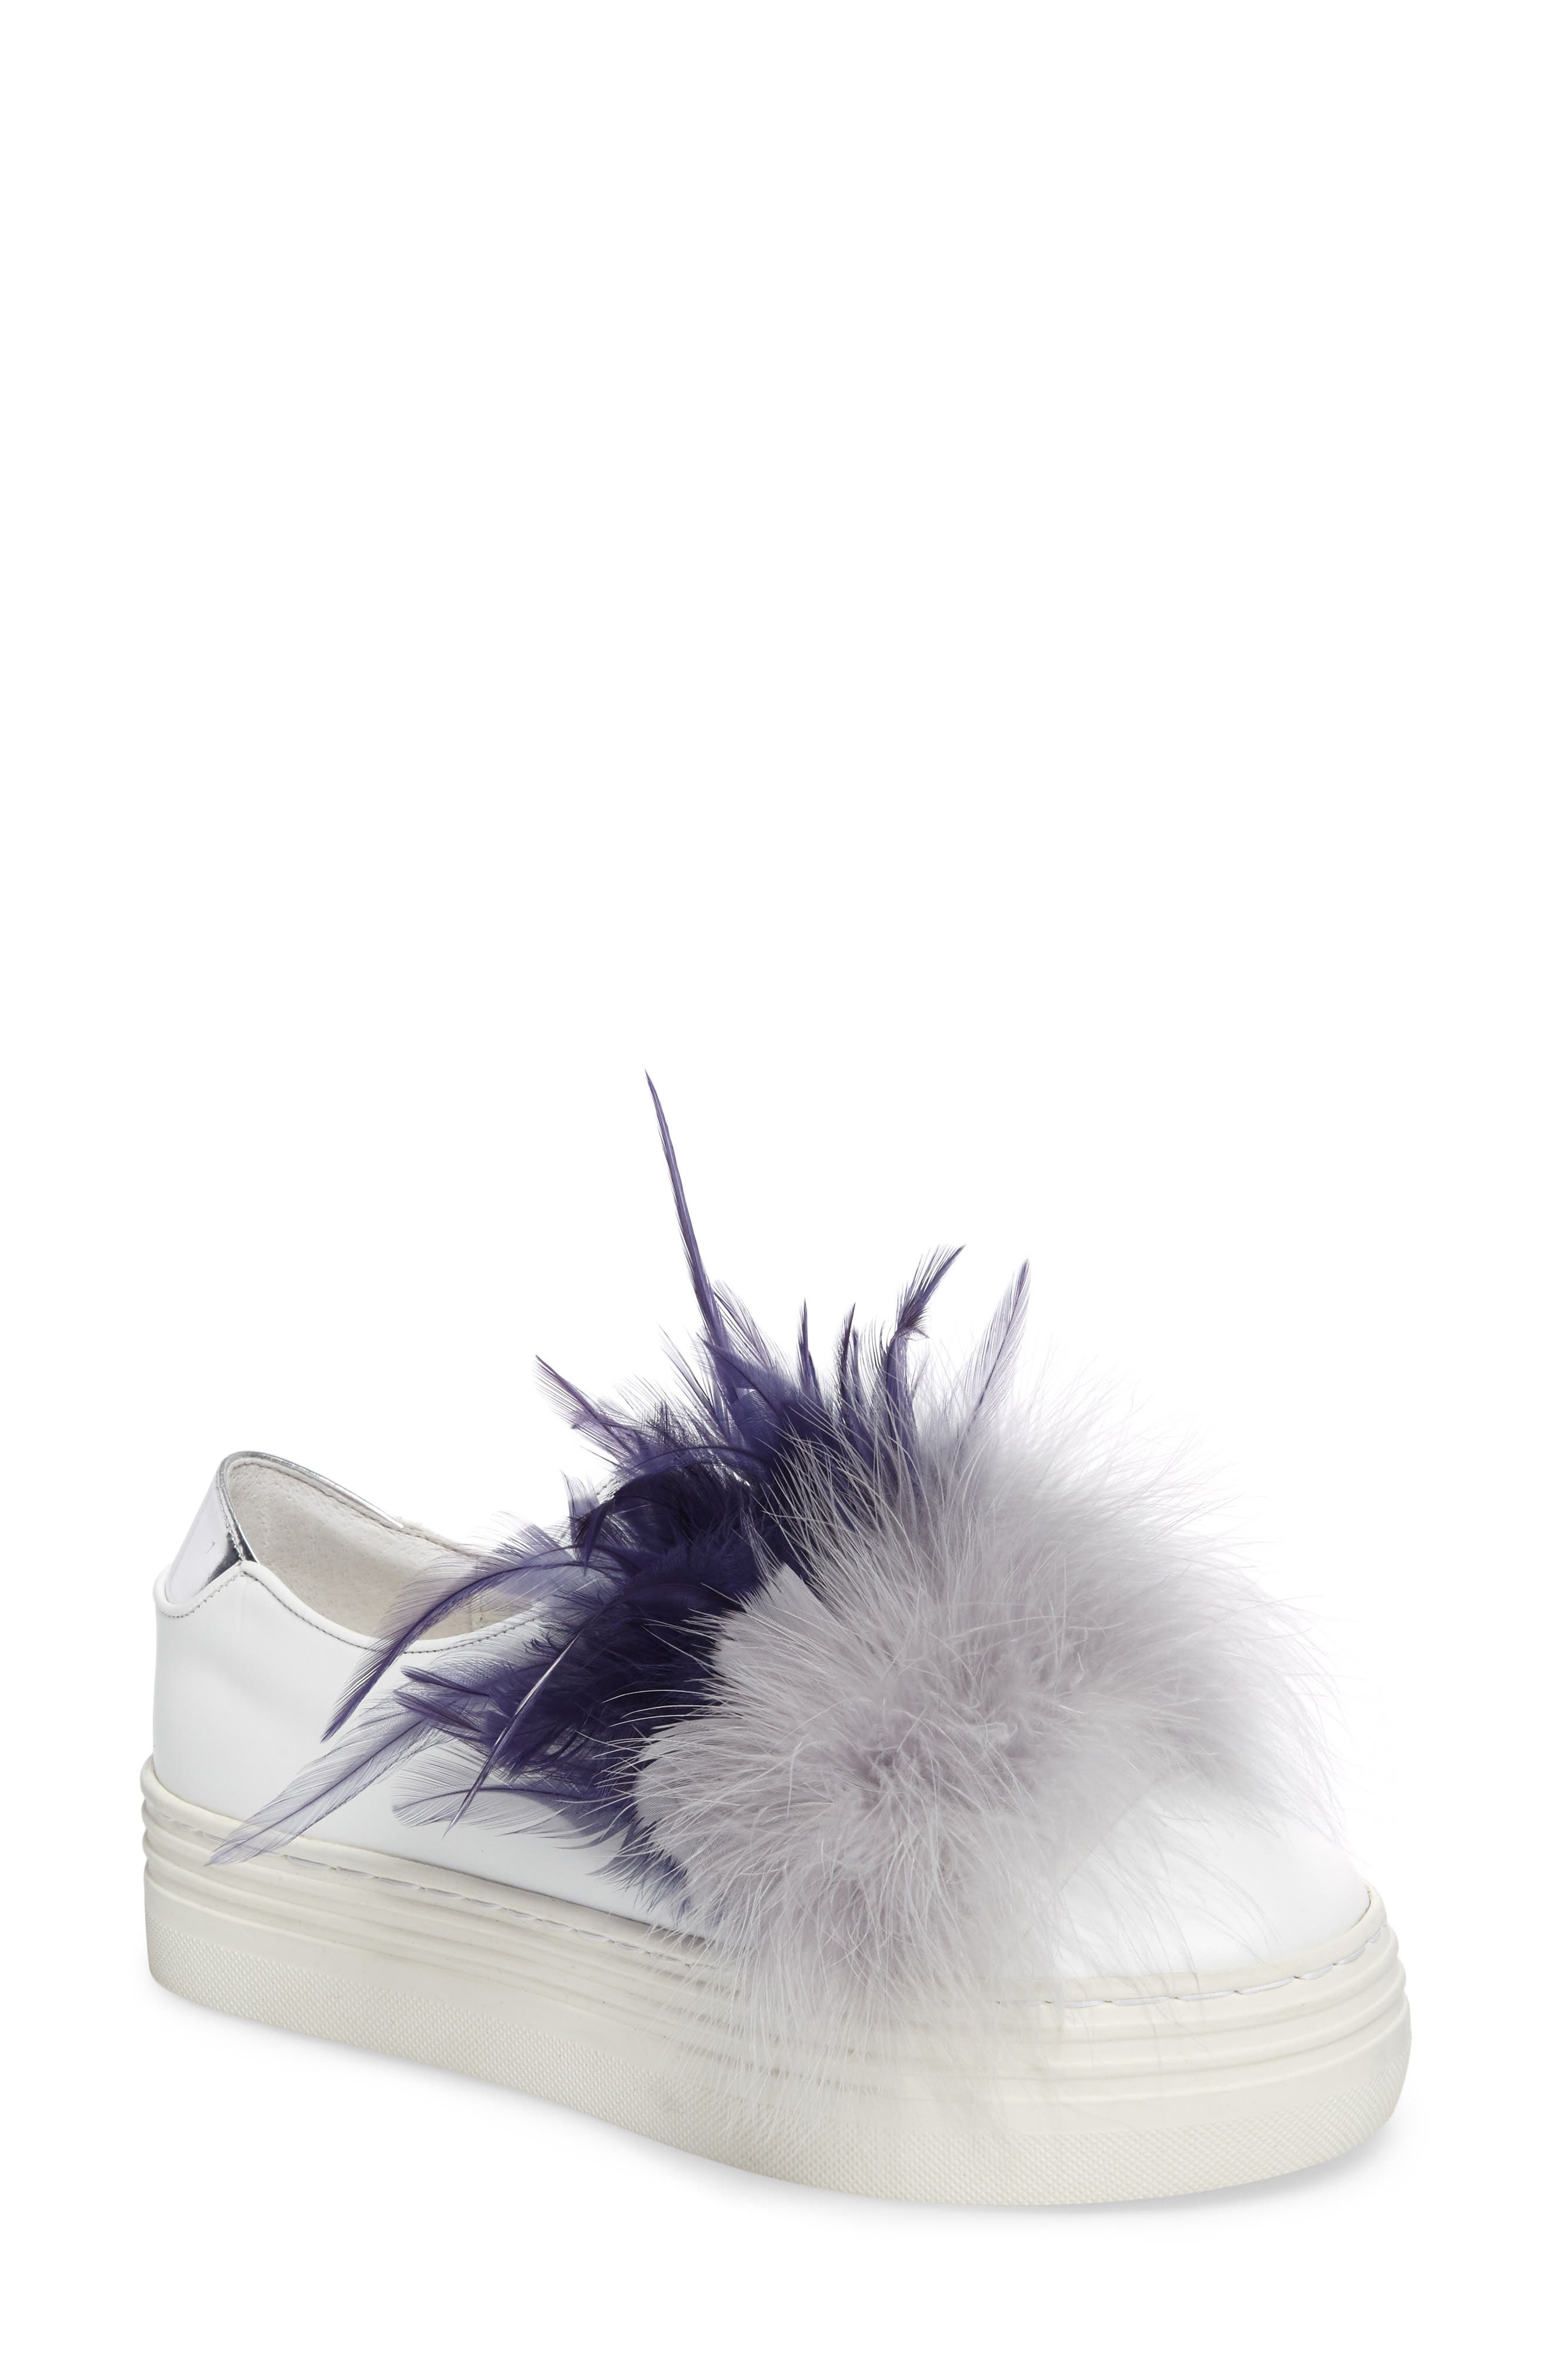 Main Image - Here / Now Tina Feathered Slip-On Sneaker (Women)